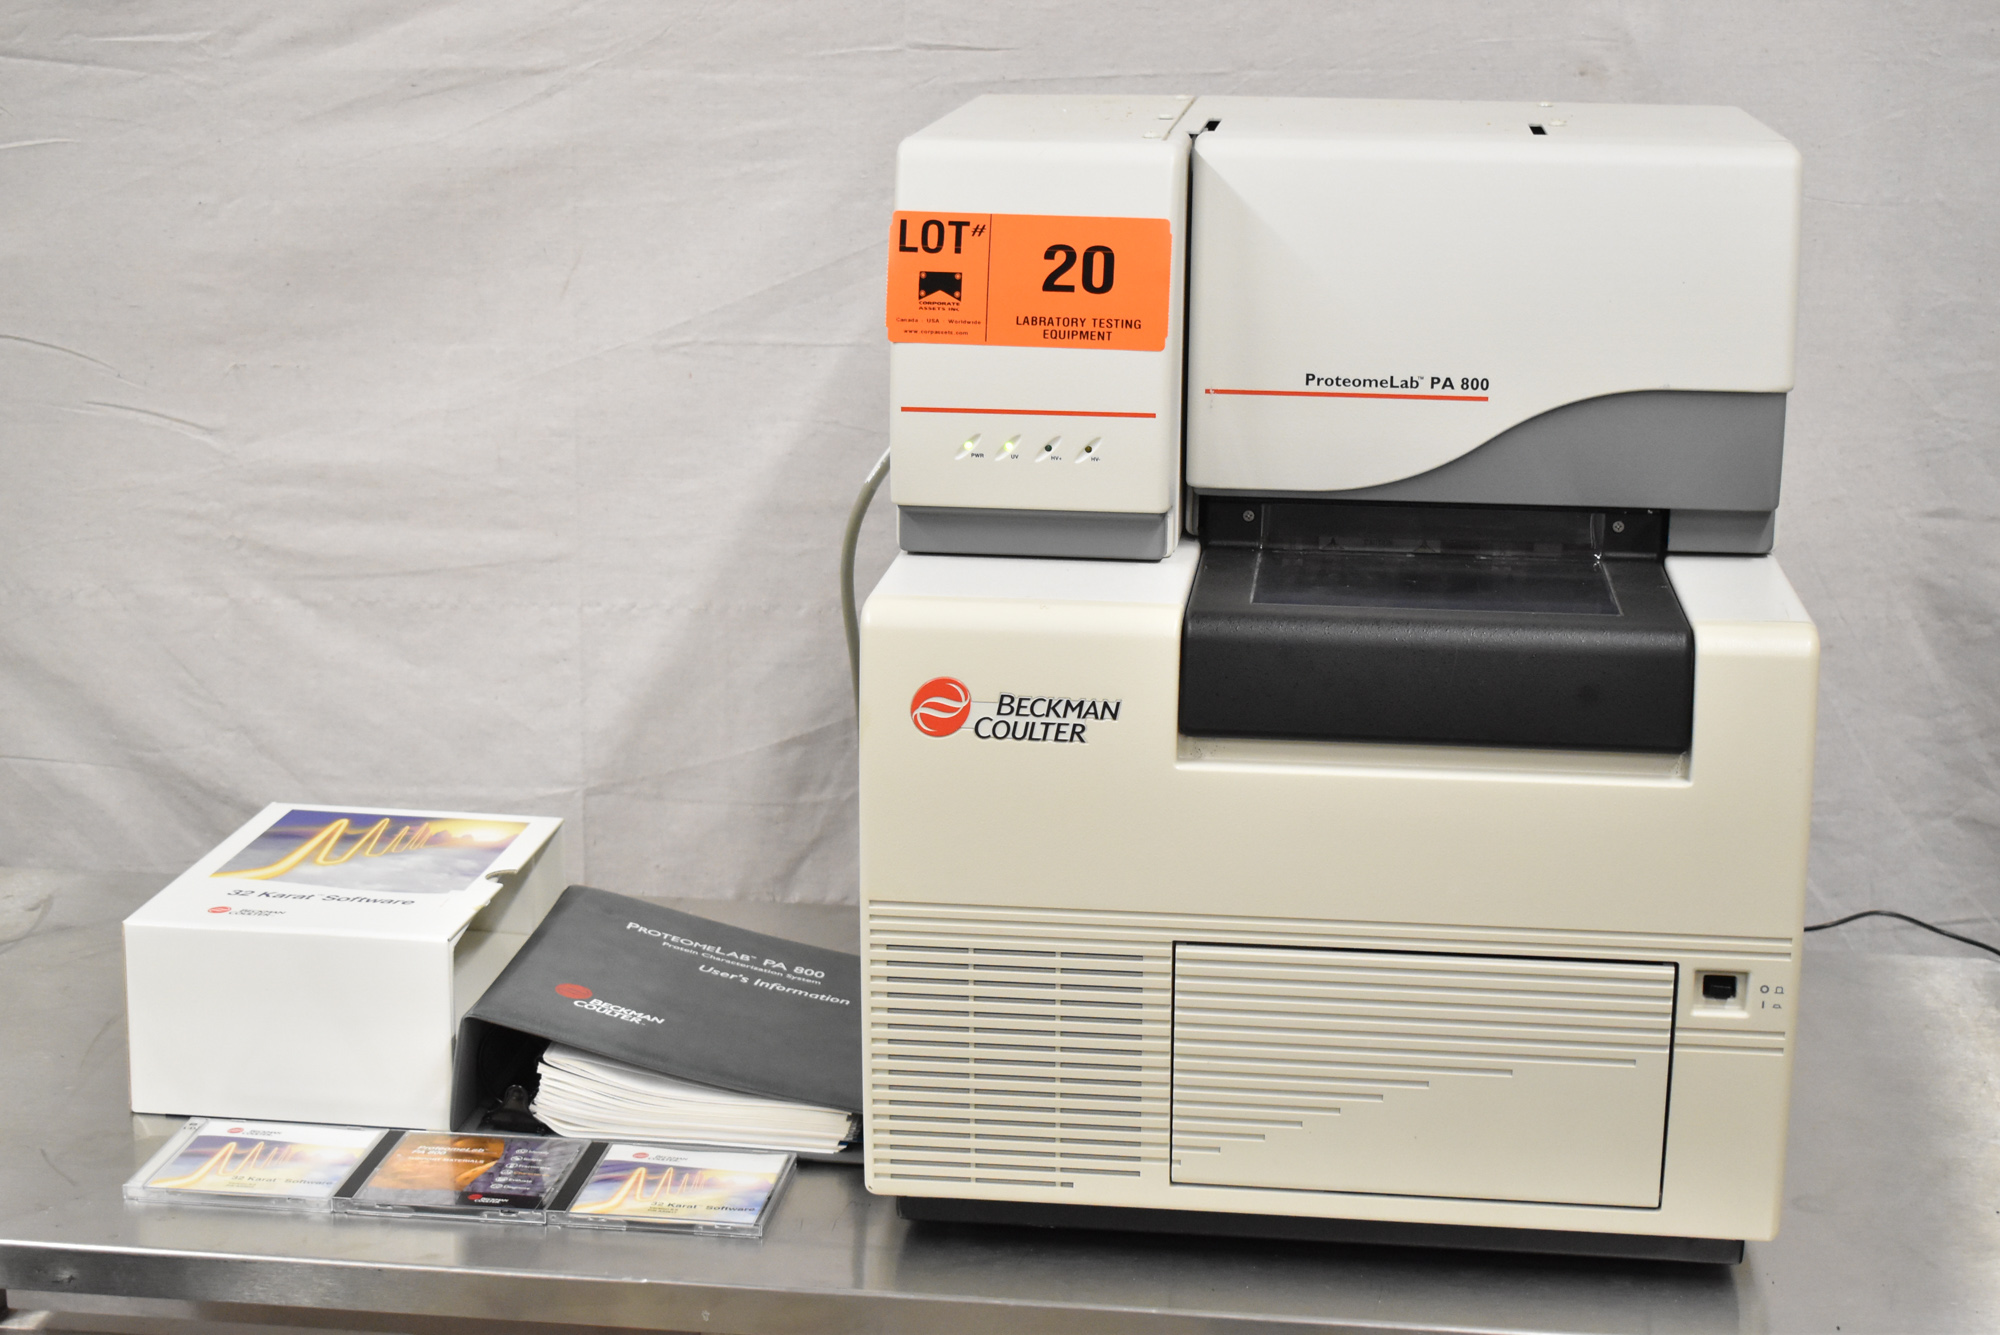 BECKMAN COULTER PROTEOMELAB PA800 PROTEIN CHARACTERIZATION SYSTEM WITH 32 KARAT VER 8.0 CD'S,